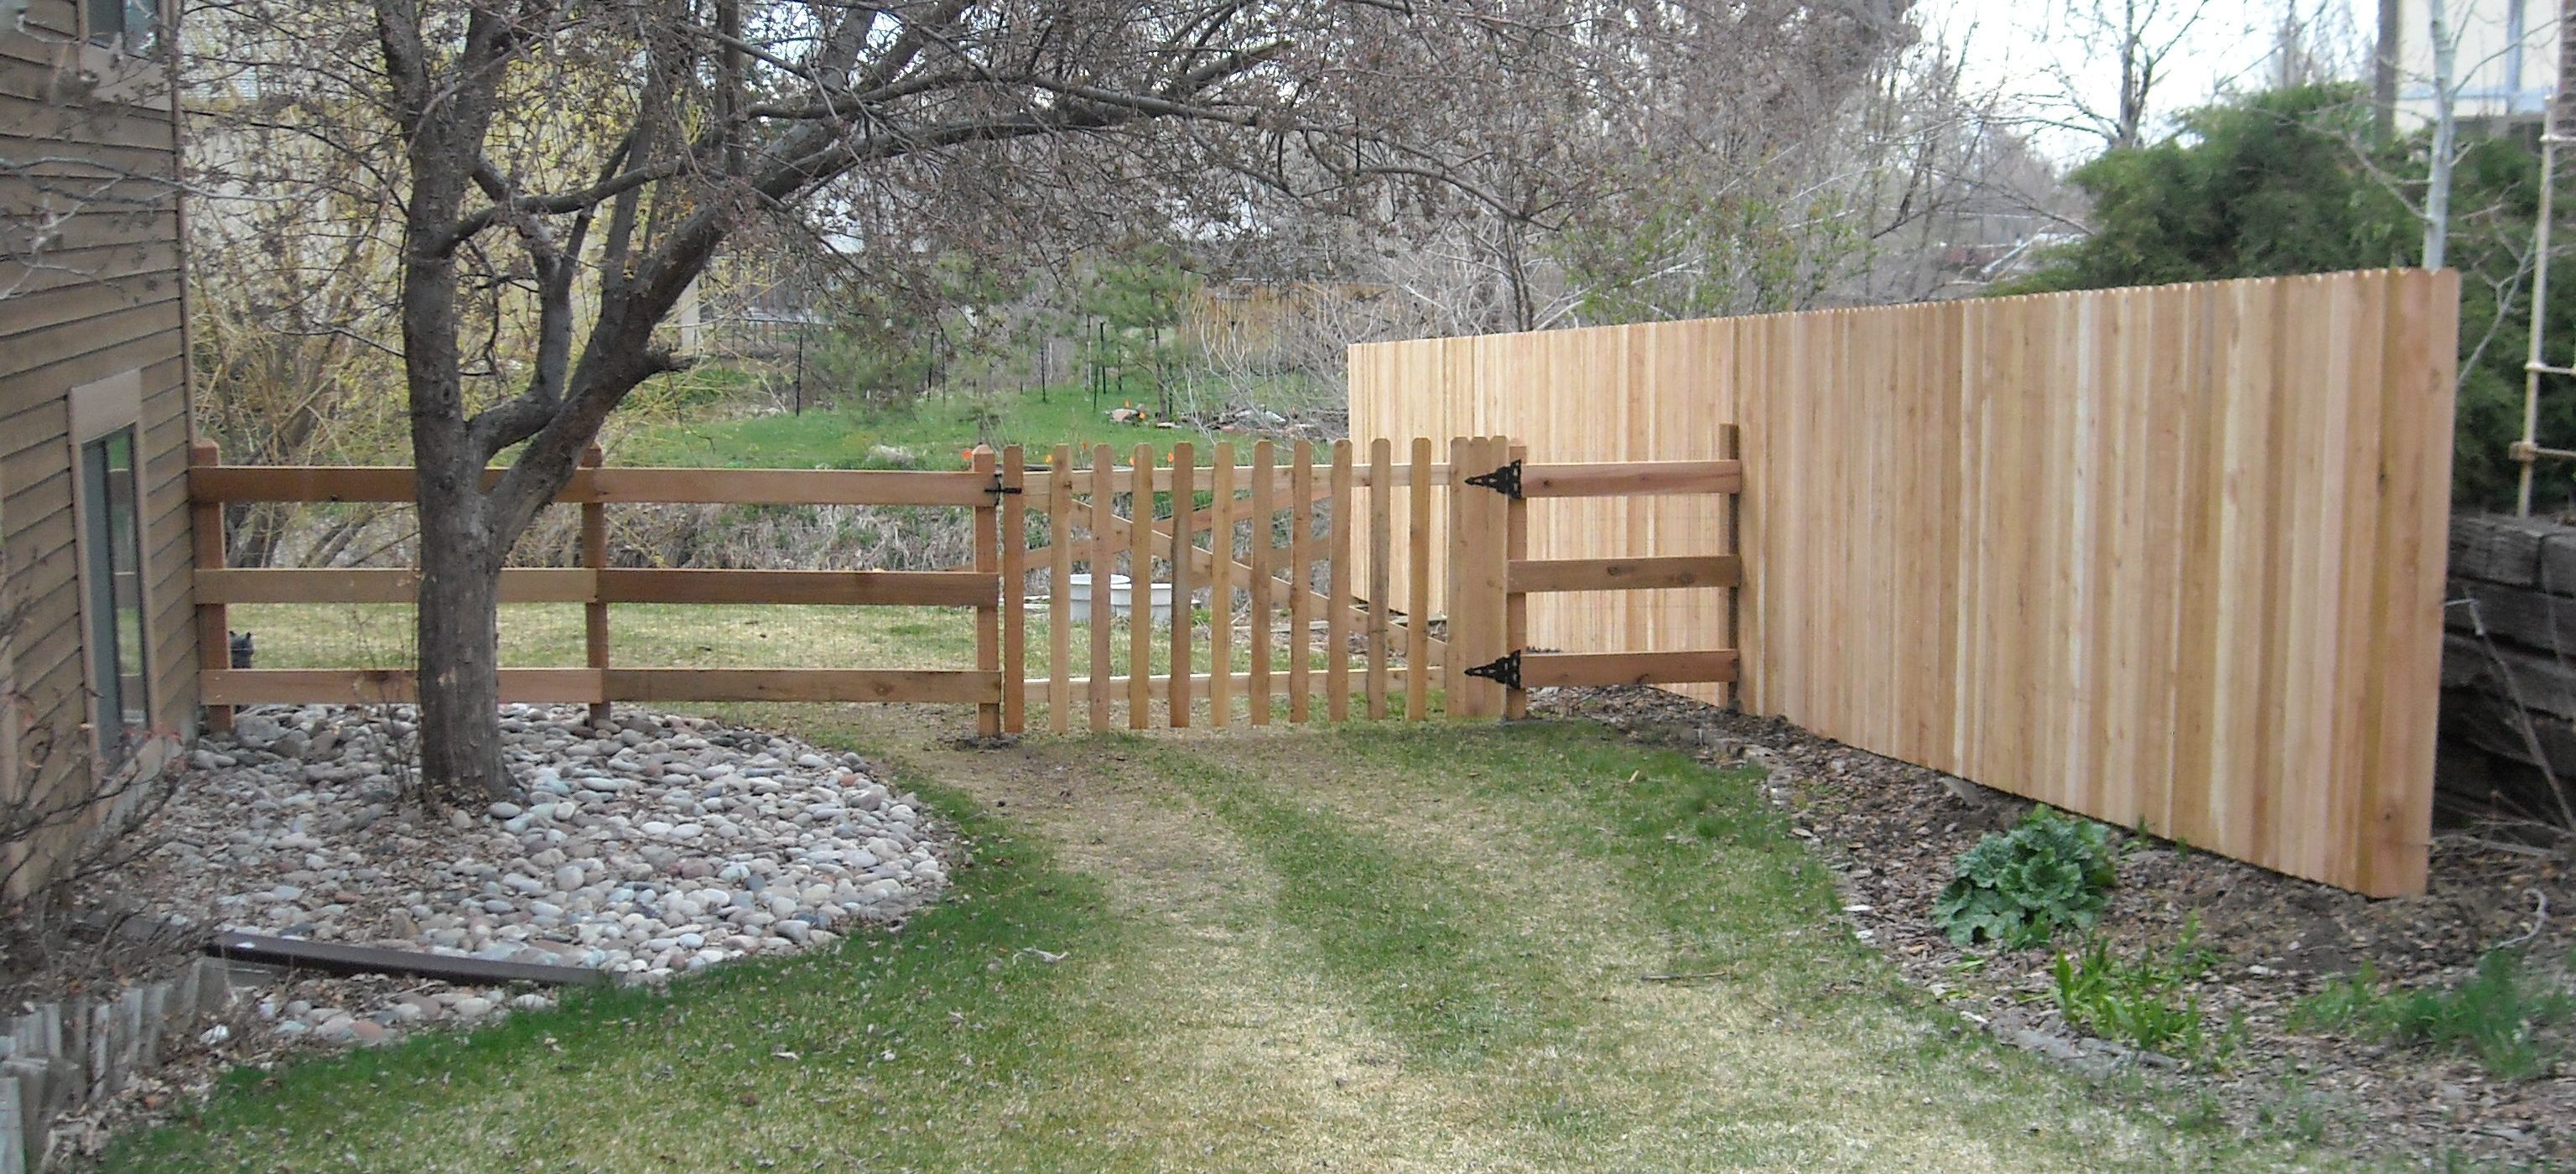 this split rail fence is excellent on a corner lot with its open